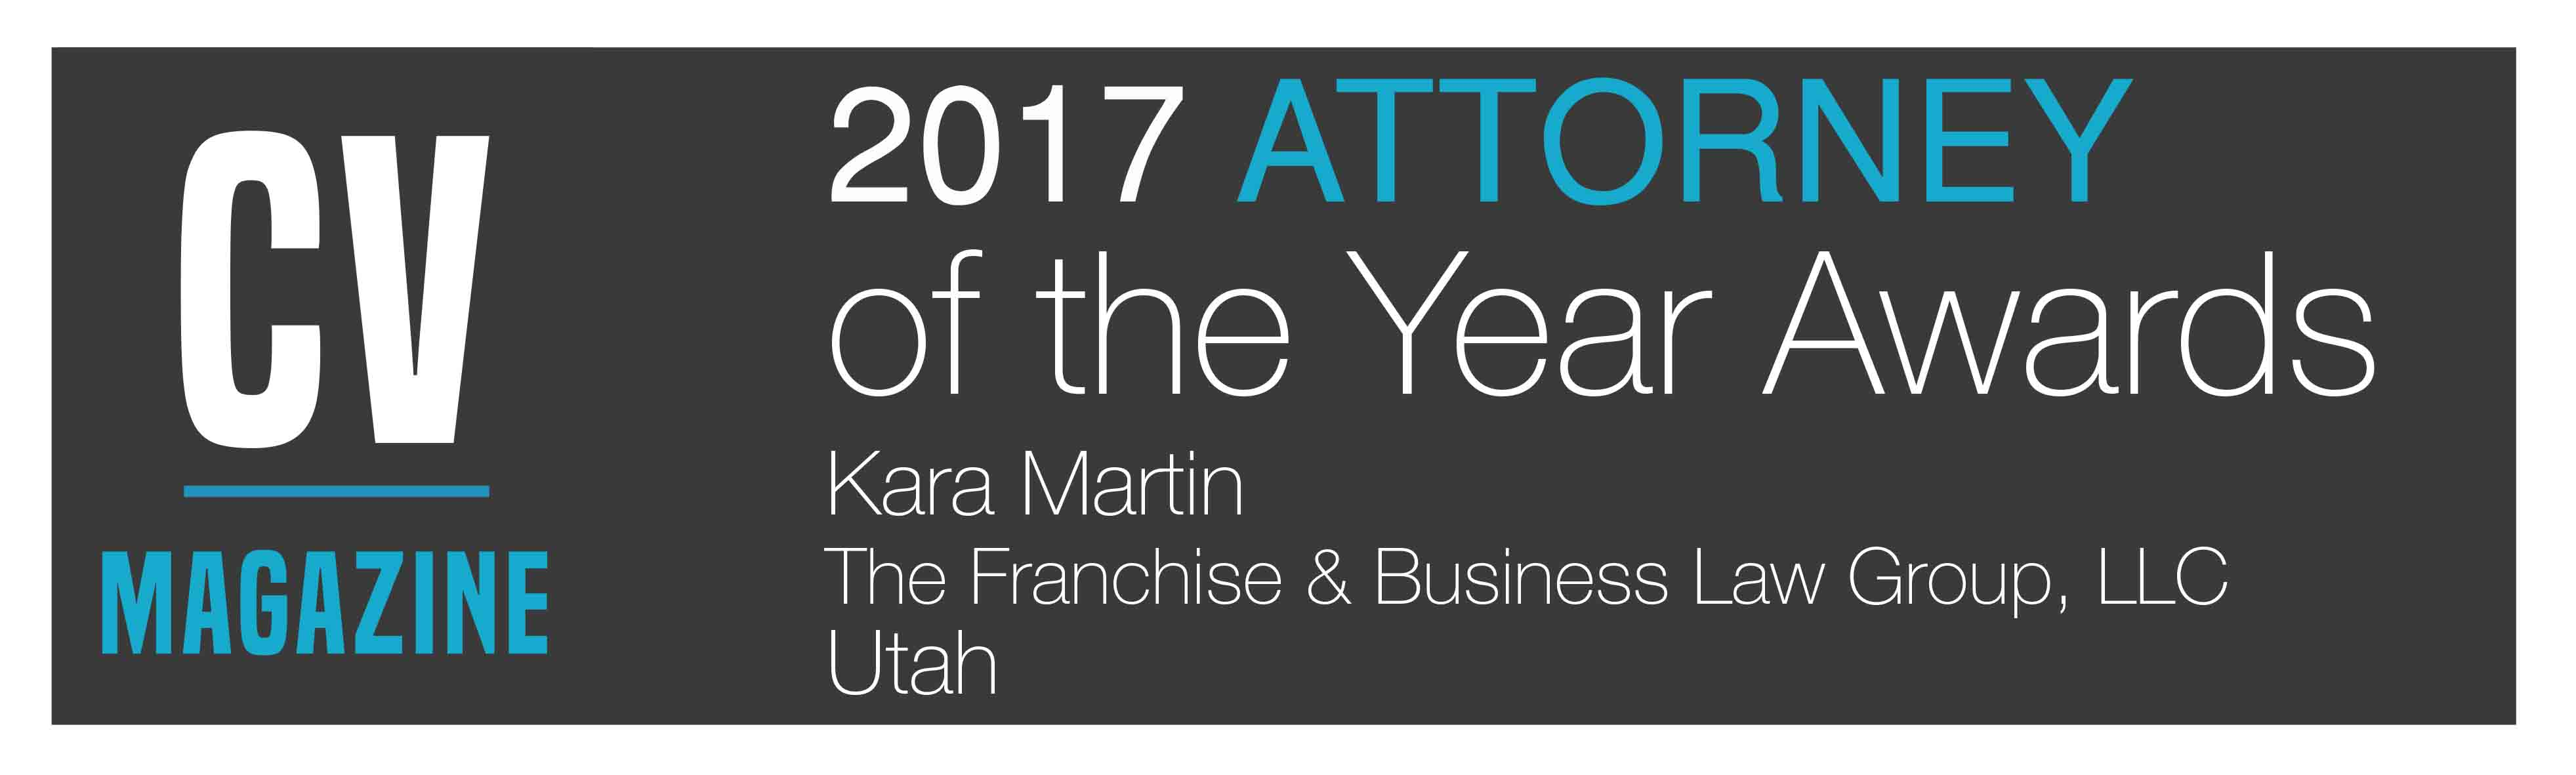 CV Magazine Attorney of the year award Franchise law